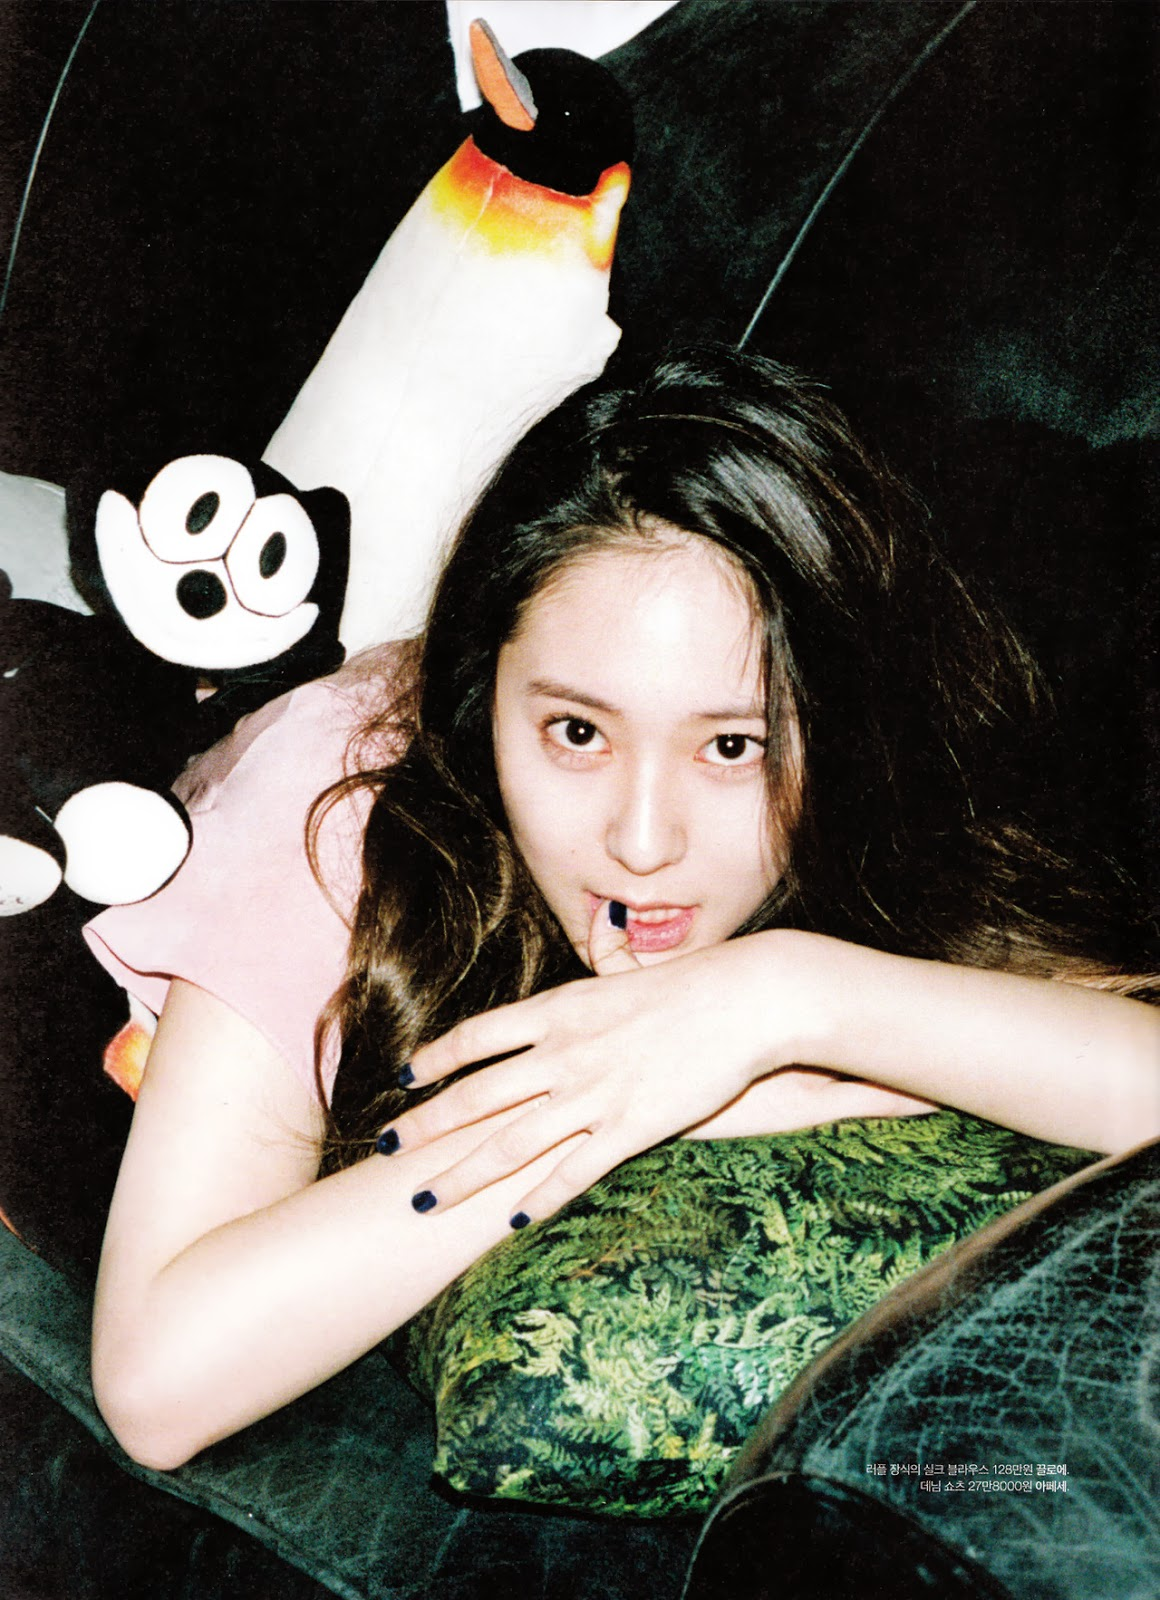 Krystal Jung f(x) - The Celebrity Magazine February Issue 2014